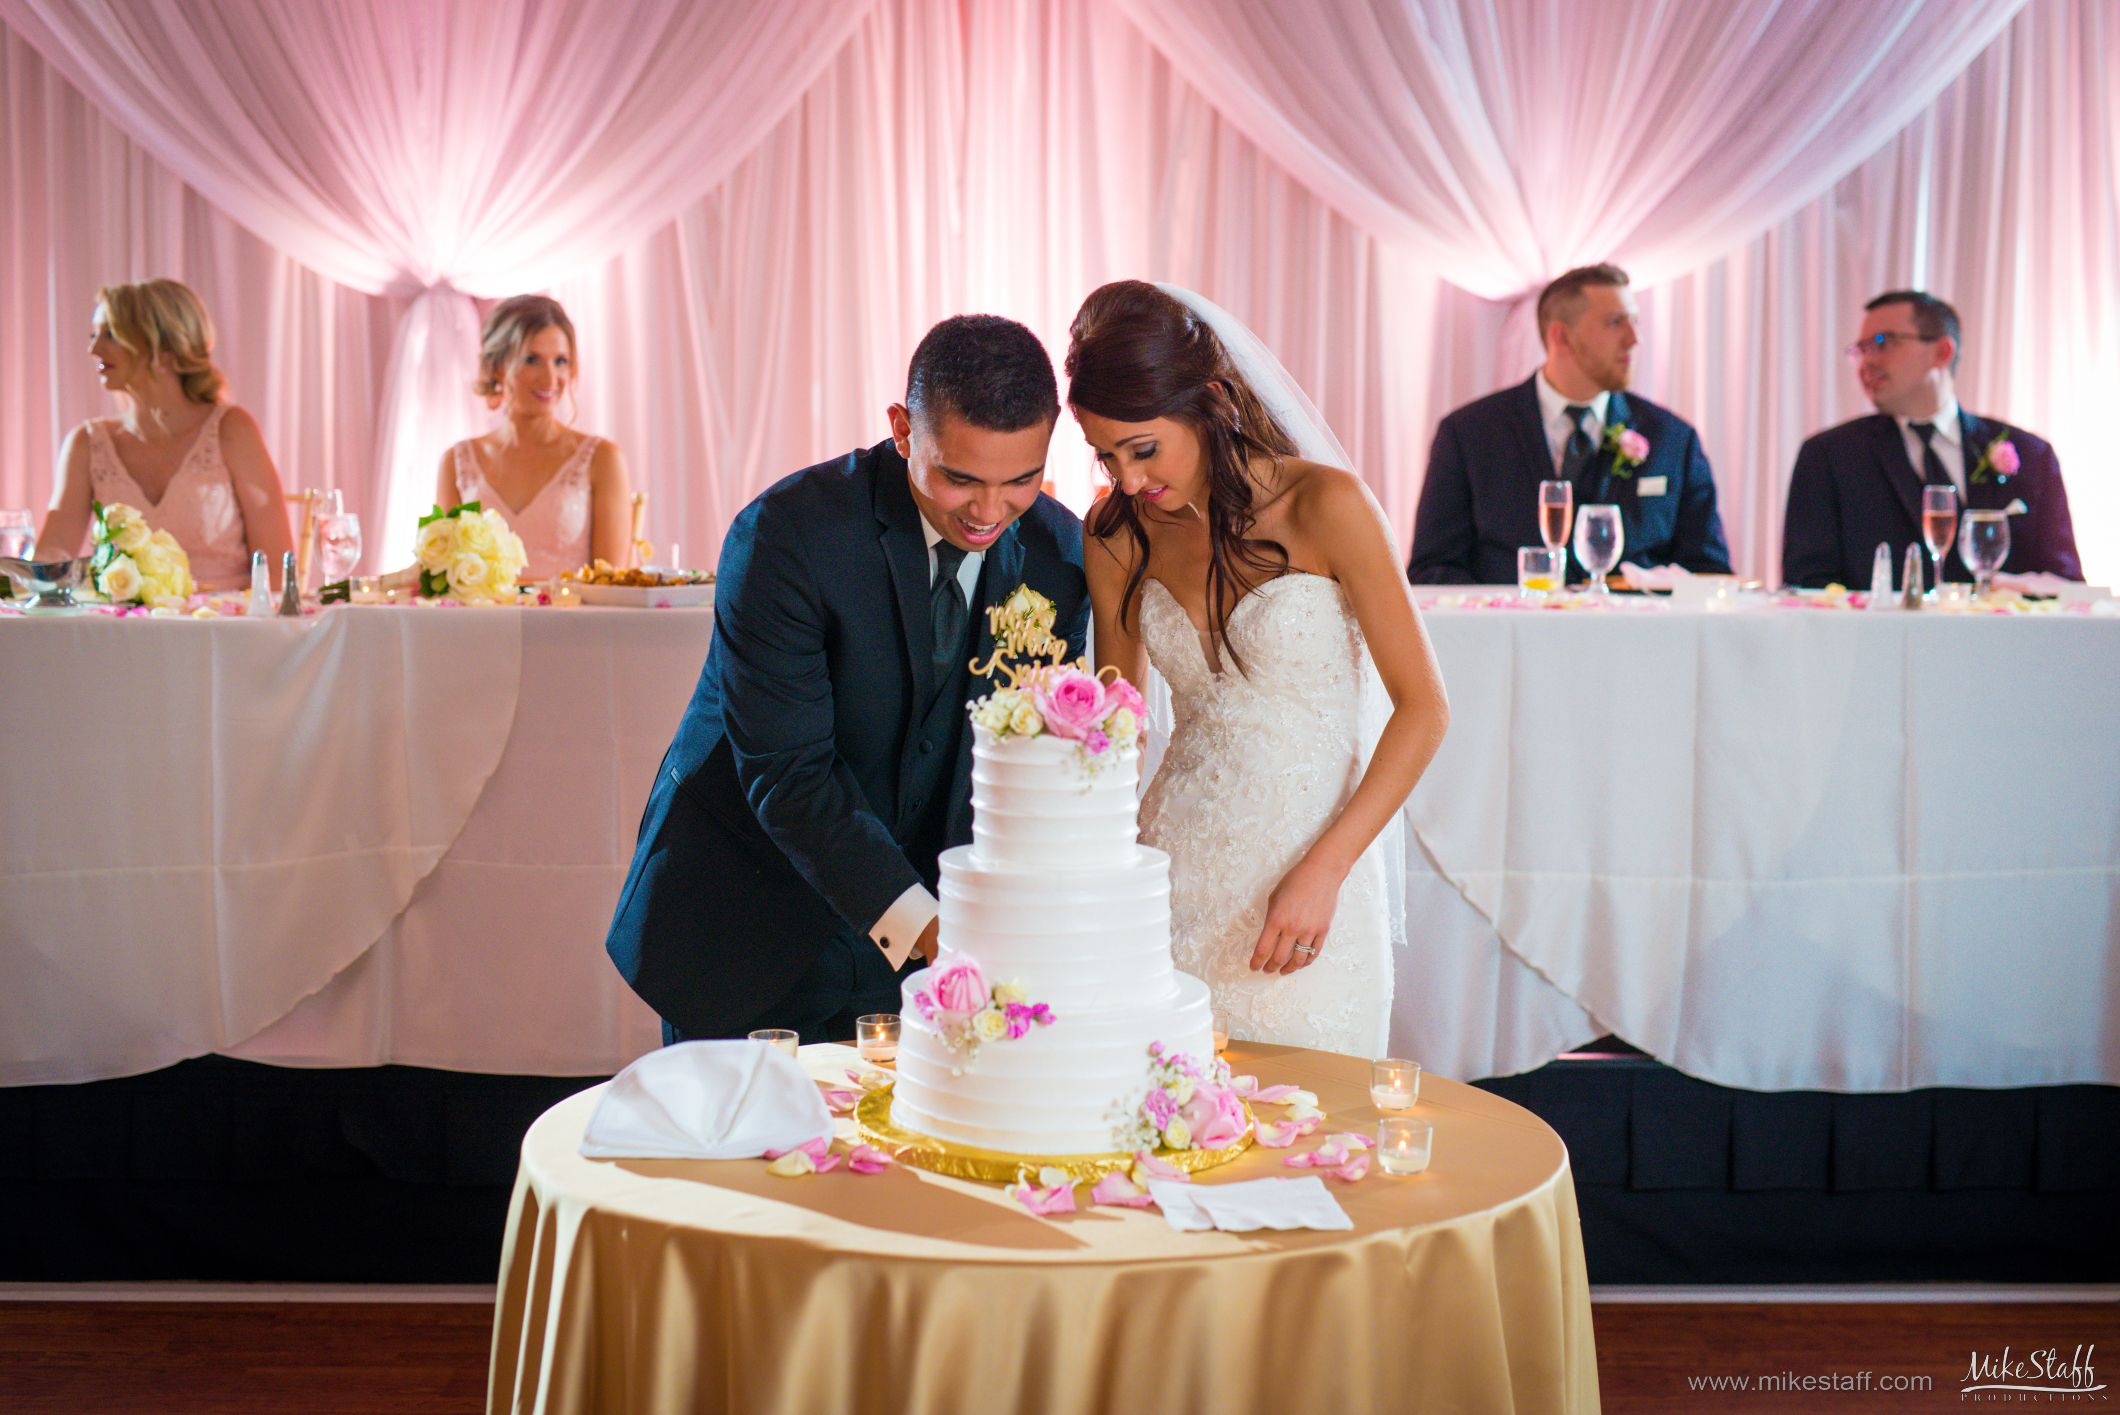 Have You Read How To Hire A Great Dj Wedding Dj Wedding Dj Questions Wedding Reception Photography